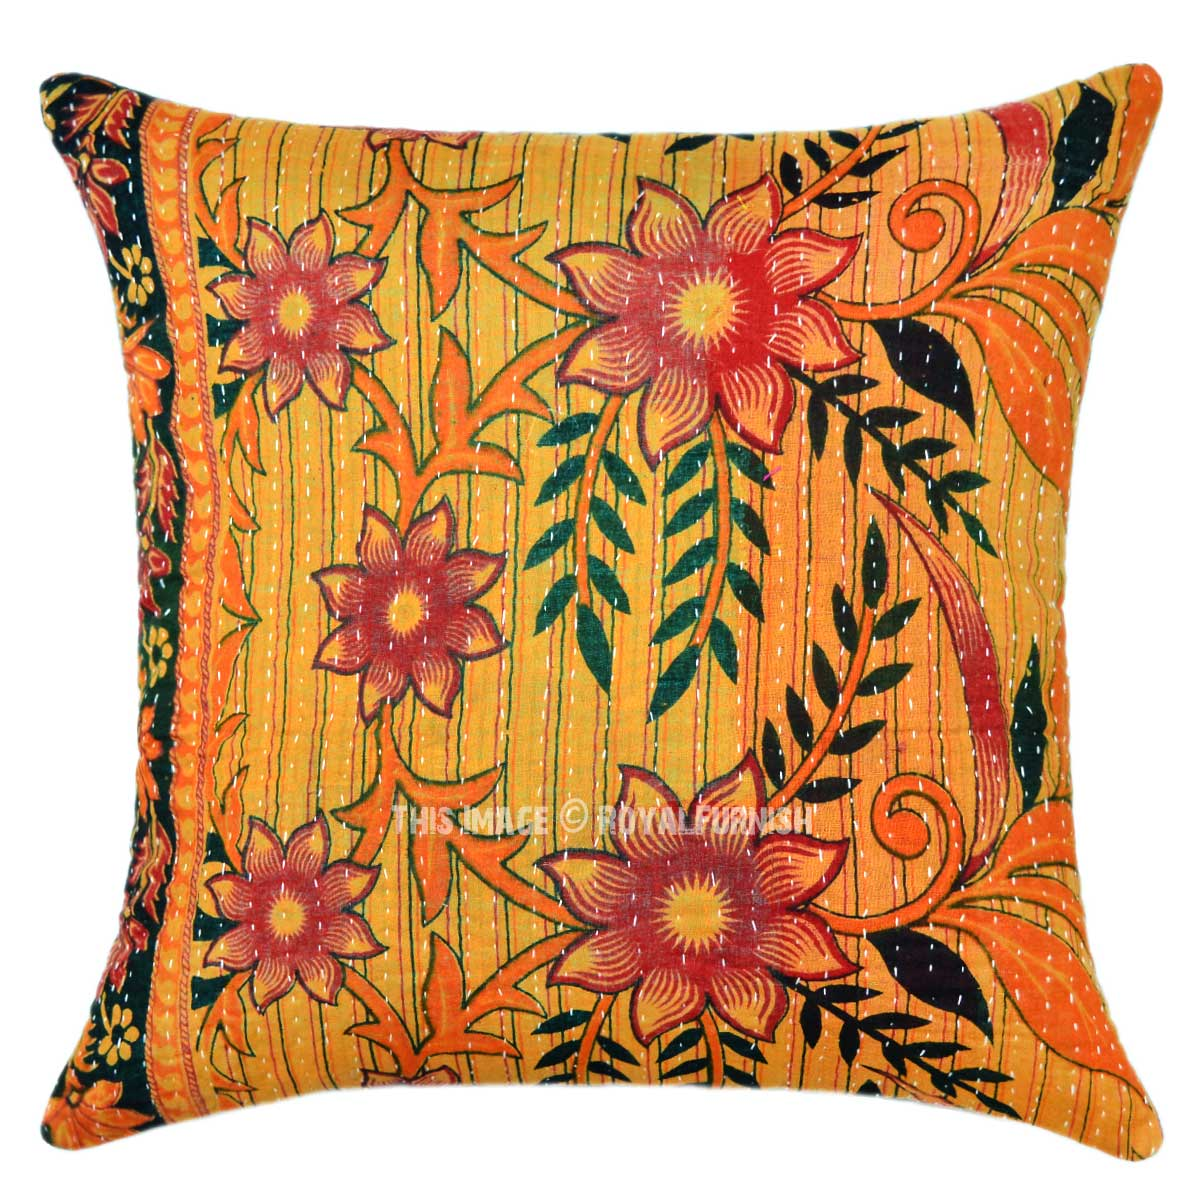 Vintage Decorative Pillow : Orange Multi Flower Plant Decorative Vintage Kantha Throw Pillow Sham - RoyalFurnish.com